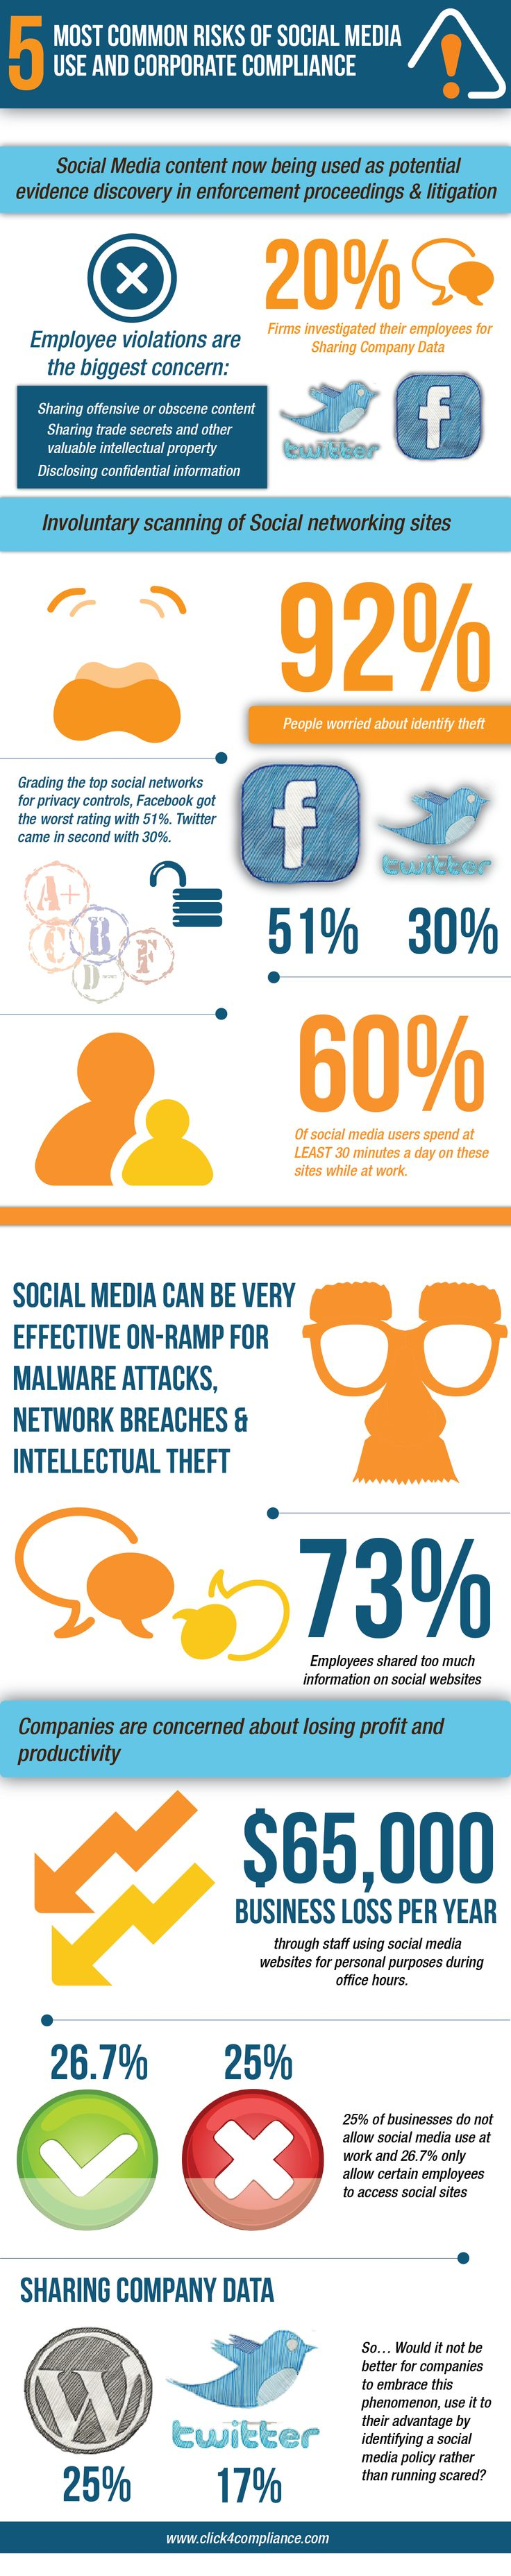 5 Most Common Risks of Social Media Use and Corporate Compliance[INFOGRAPHIC]